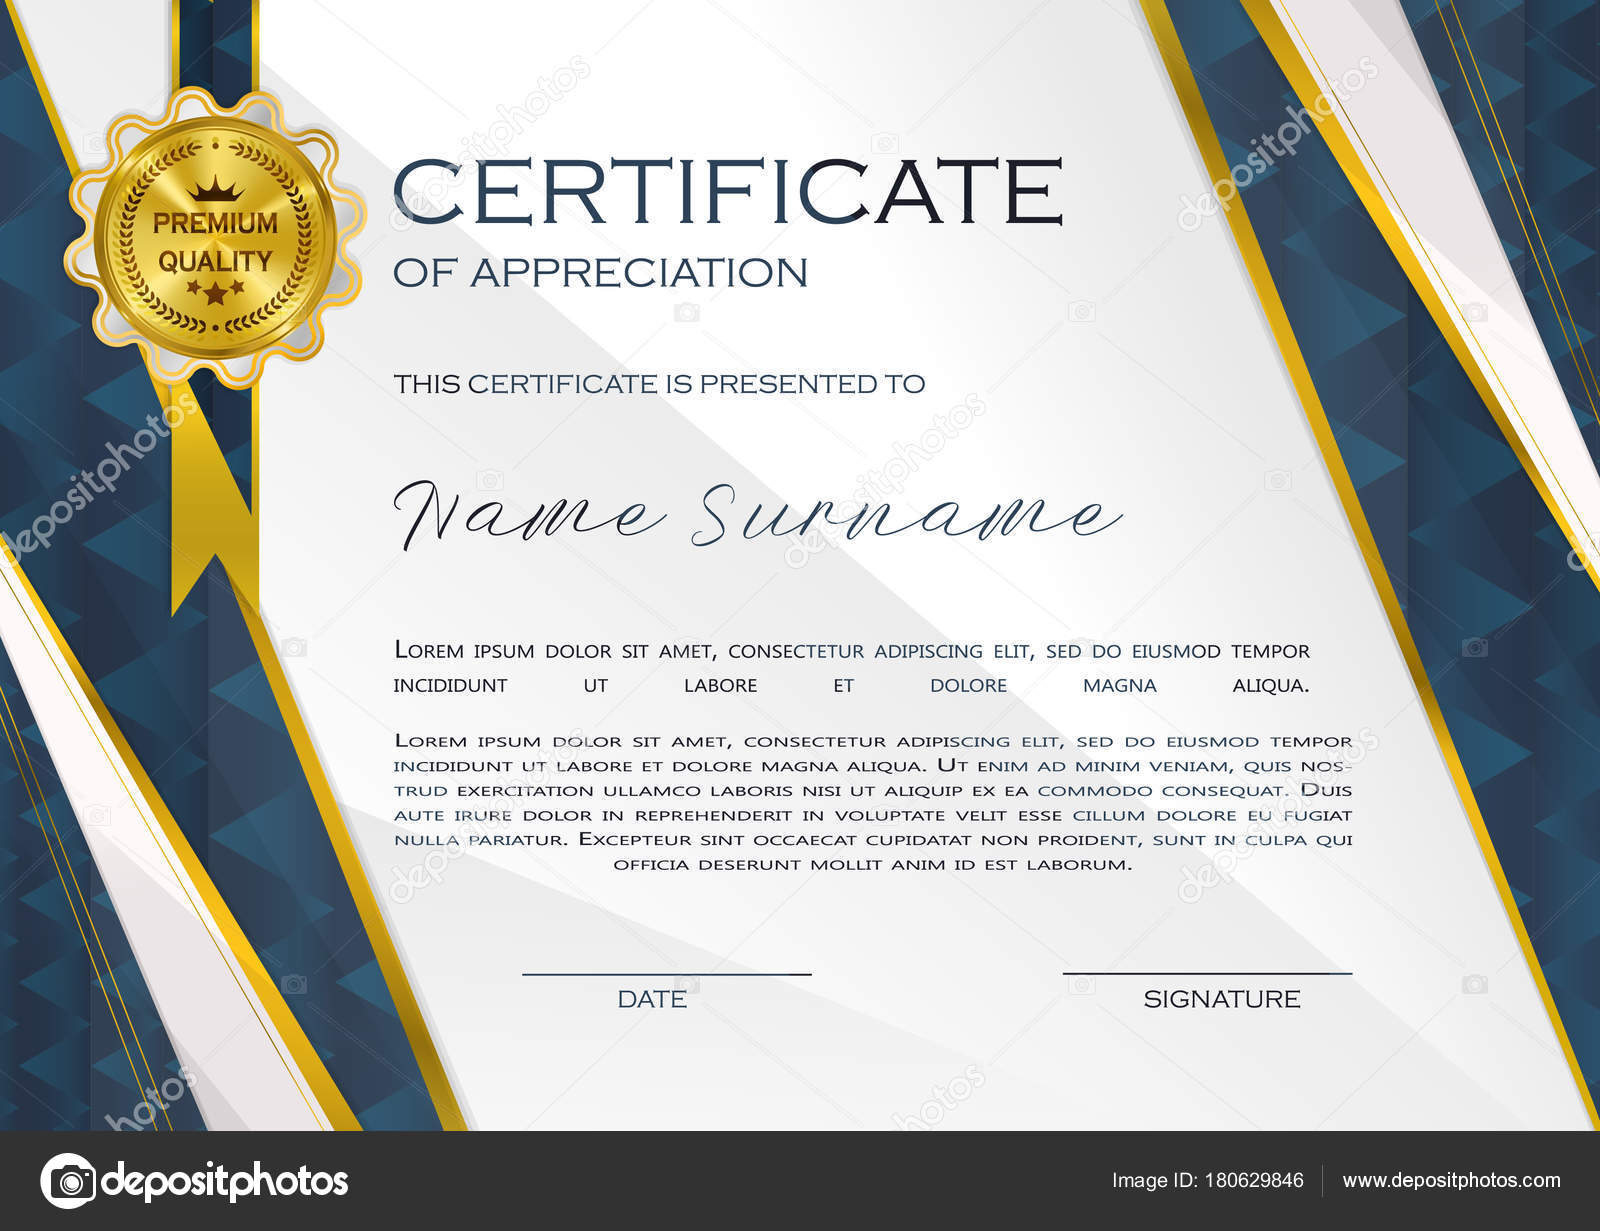 Qualification certificate appreciation design elegant luxury modern qualification certificate appreciation design elegant luxury modern pattern best quality stock vector yadclub Image collections